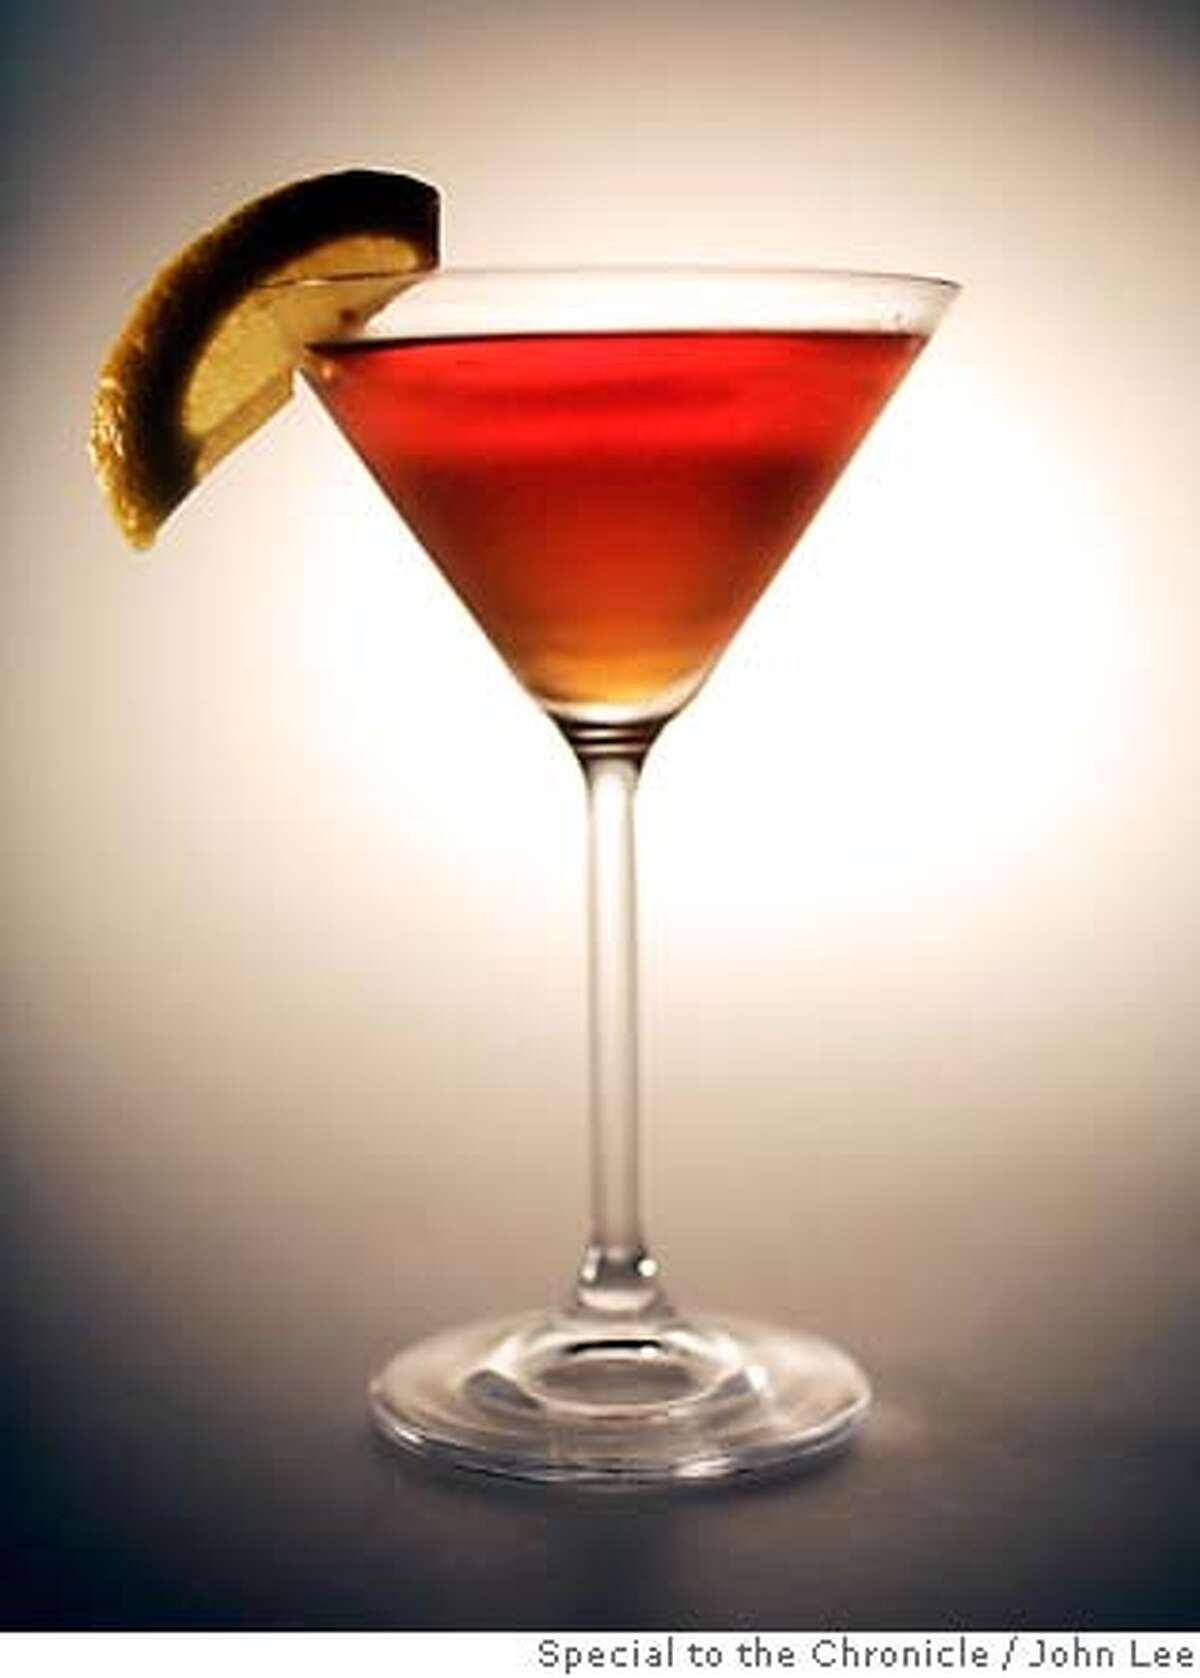 SPIRITS31_JOHNLEE.JPG Purgatory cocktail. By JOHN LEE/SPECIAL TO THE CHRONICLE